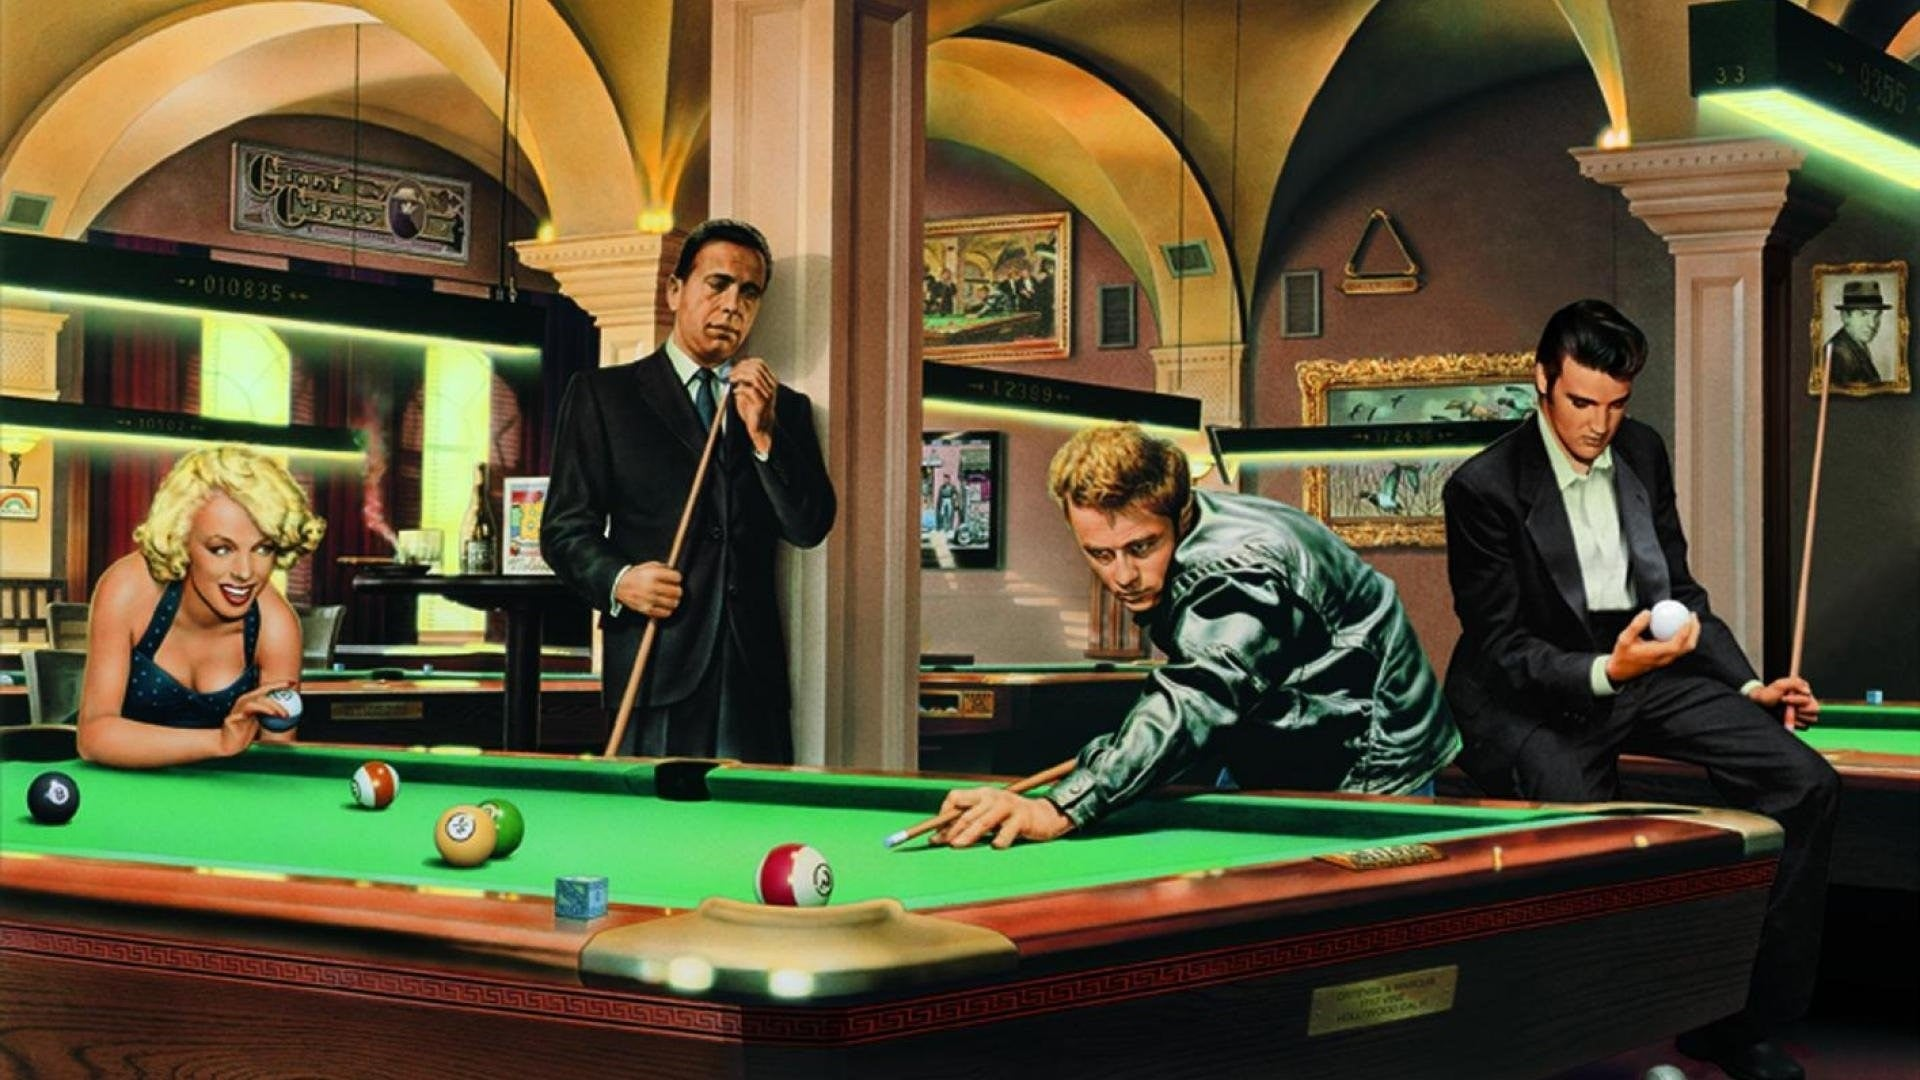 XXL Leinwandbilder Marilyn Monroe Elvis James Dean Humphrey Bogart Film Legenden Retro Billard Pool Snooker